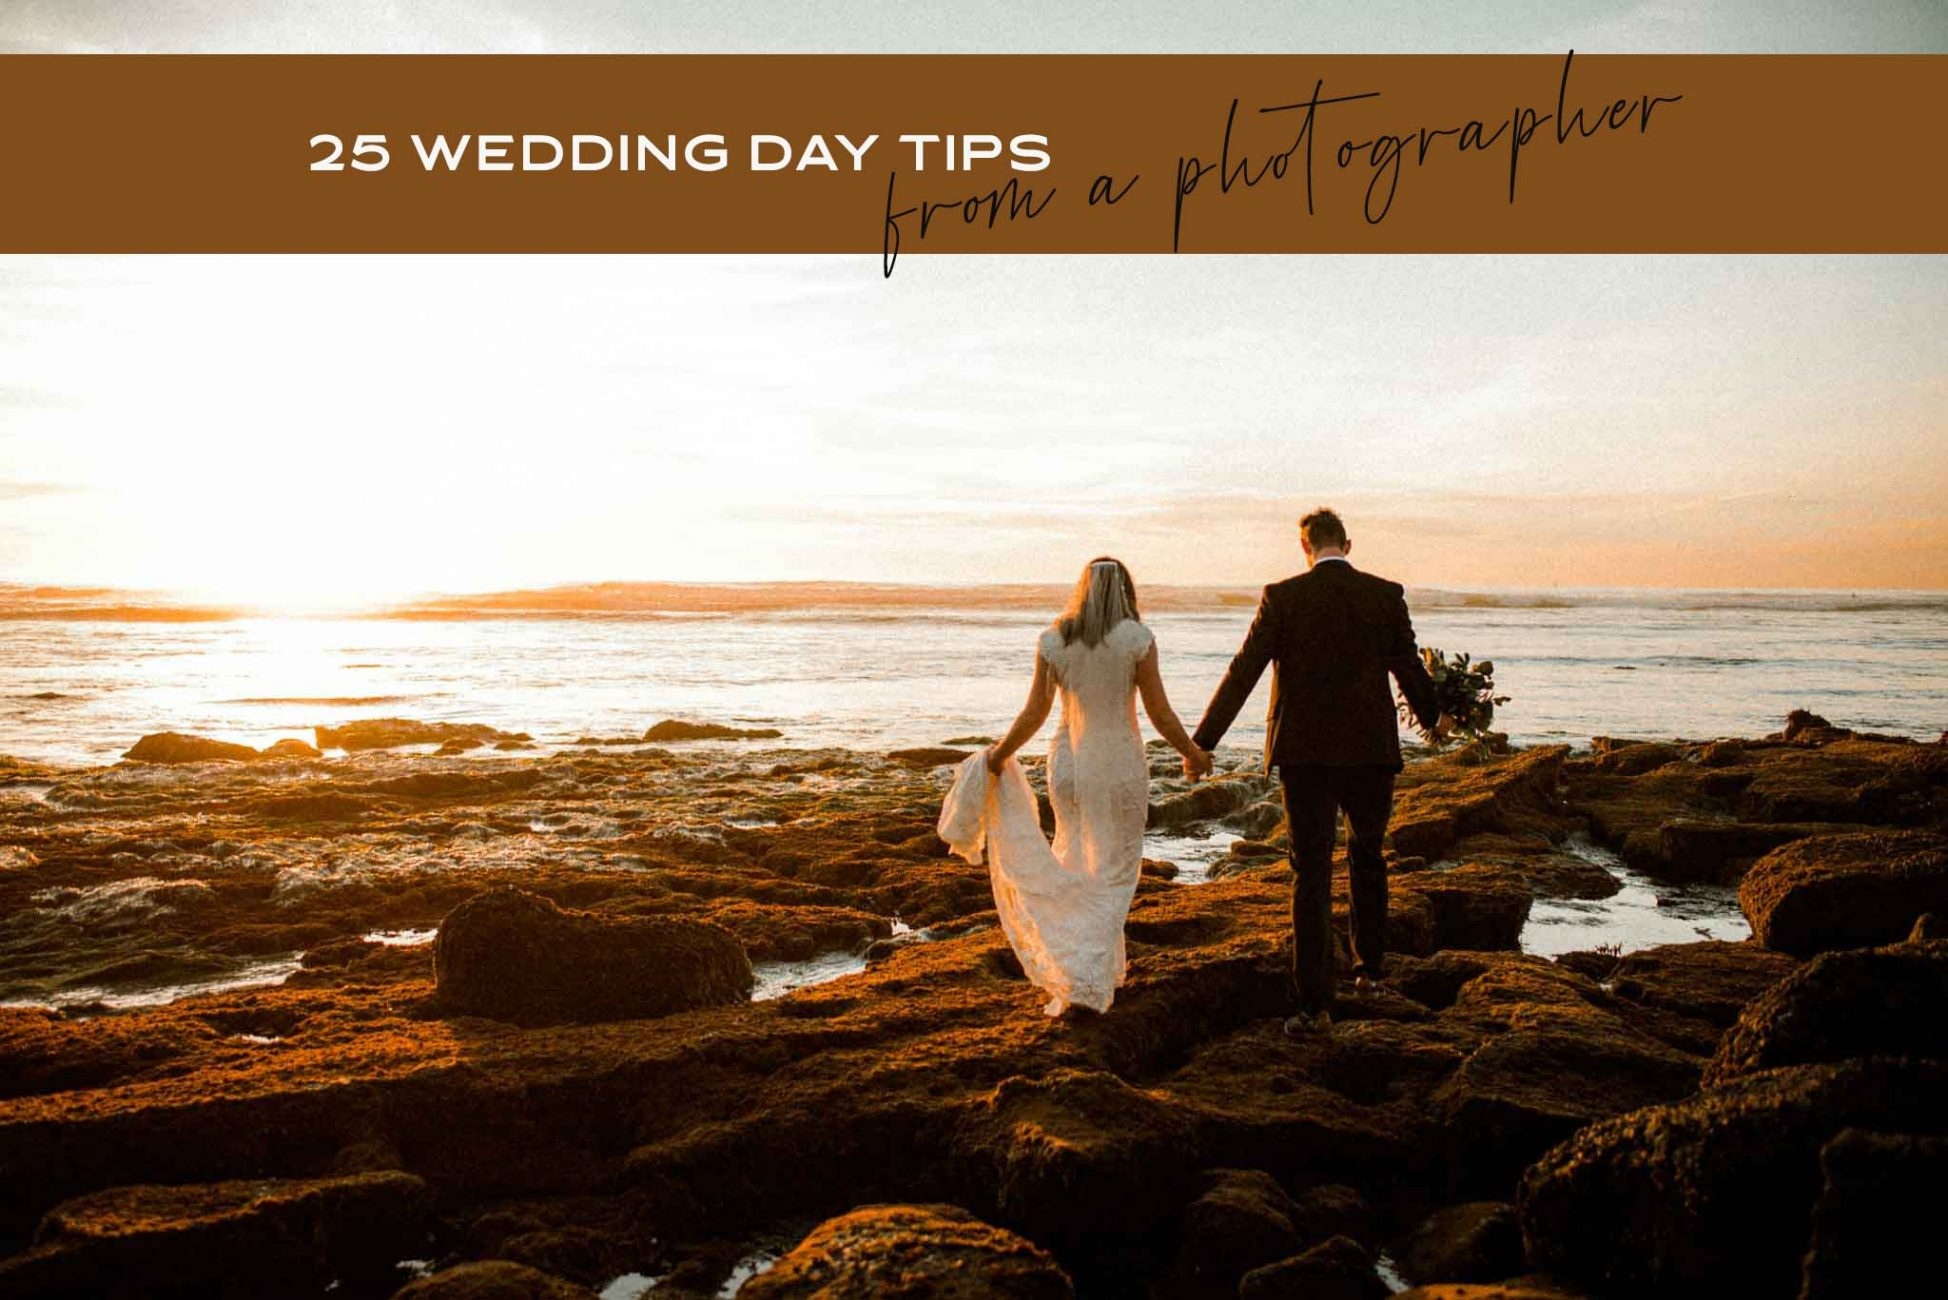 25 Wedding Day Tips for kickass photos from a professional wedding photographer